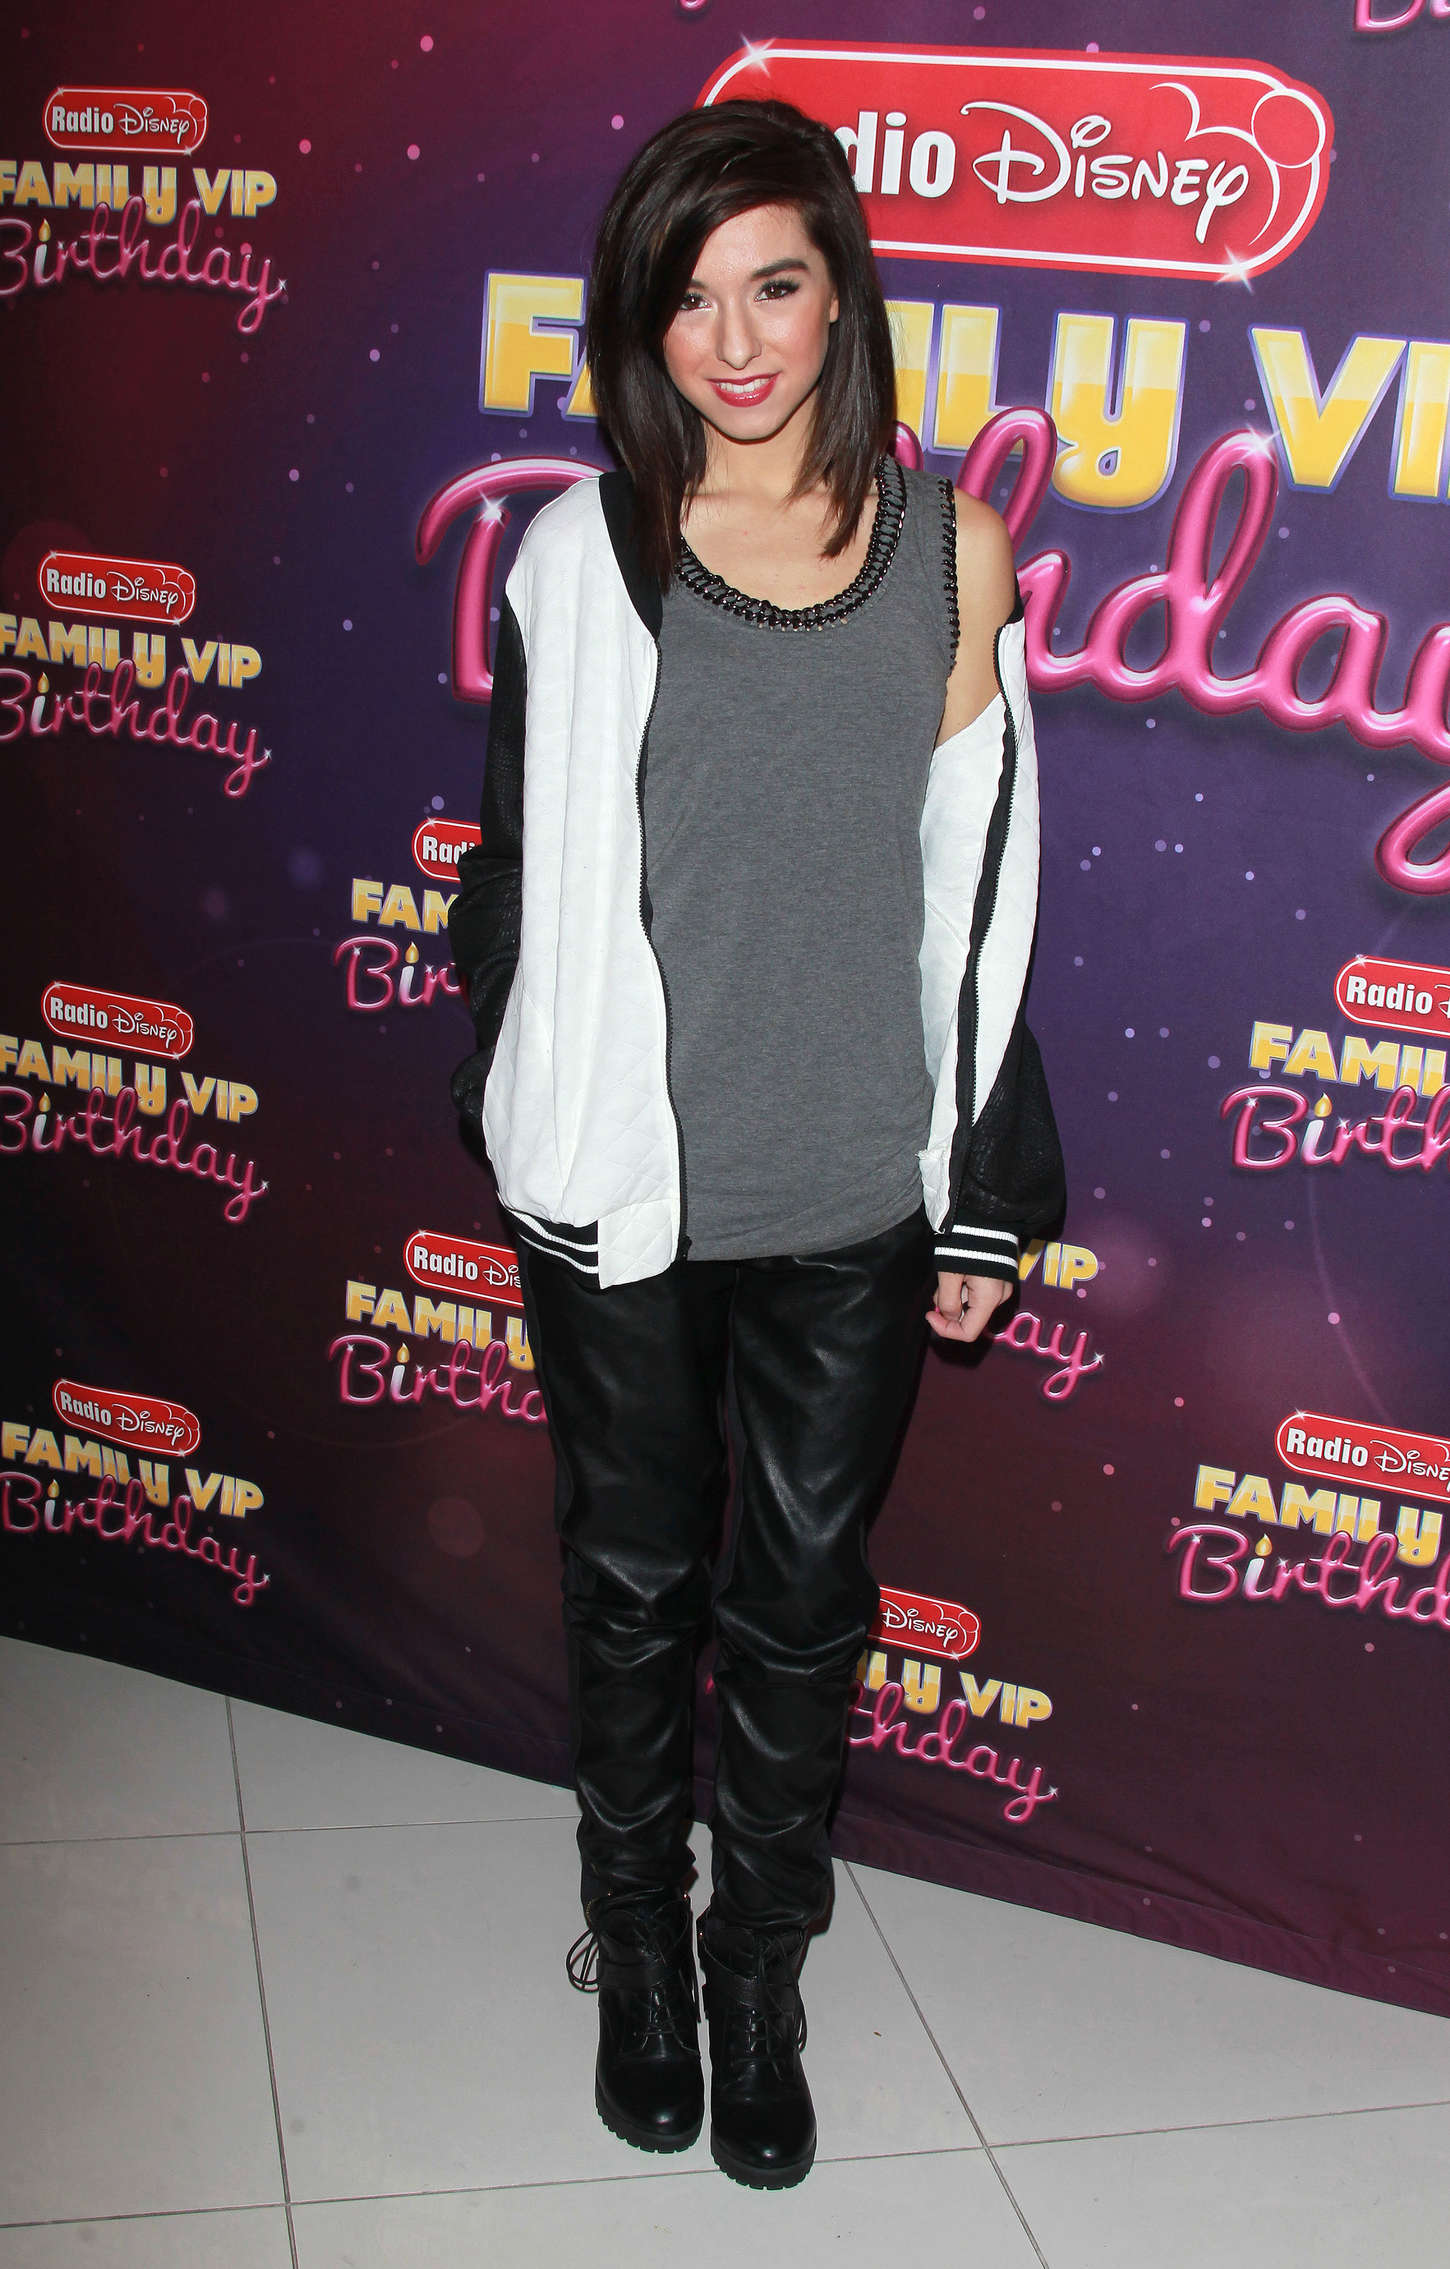 Christina Grimmie attends Radio Disney's Family VIP Birthday